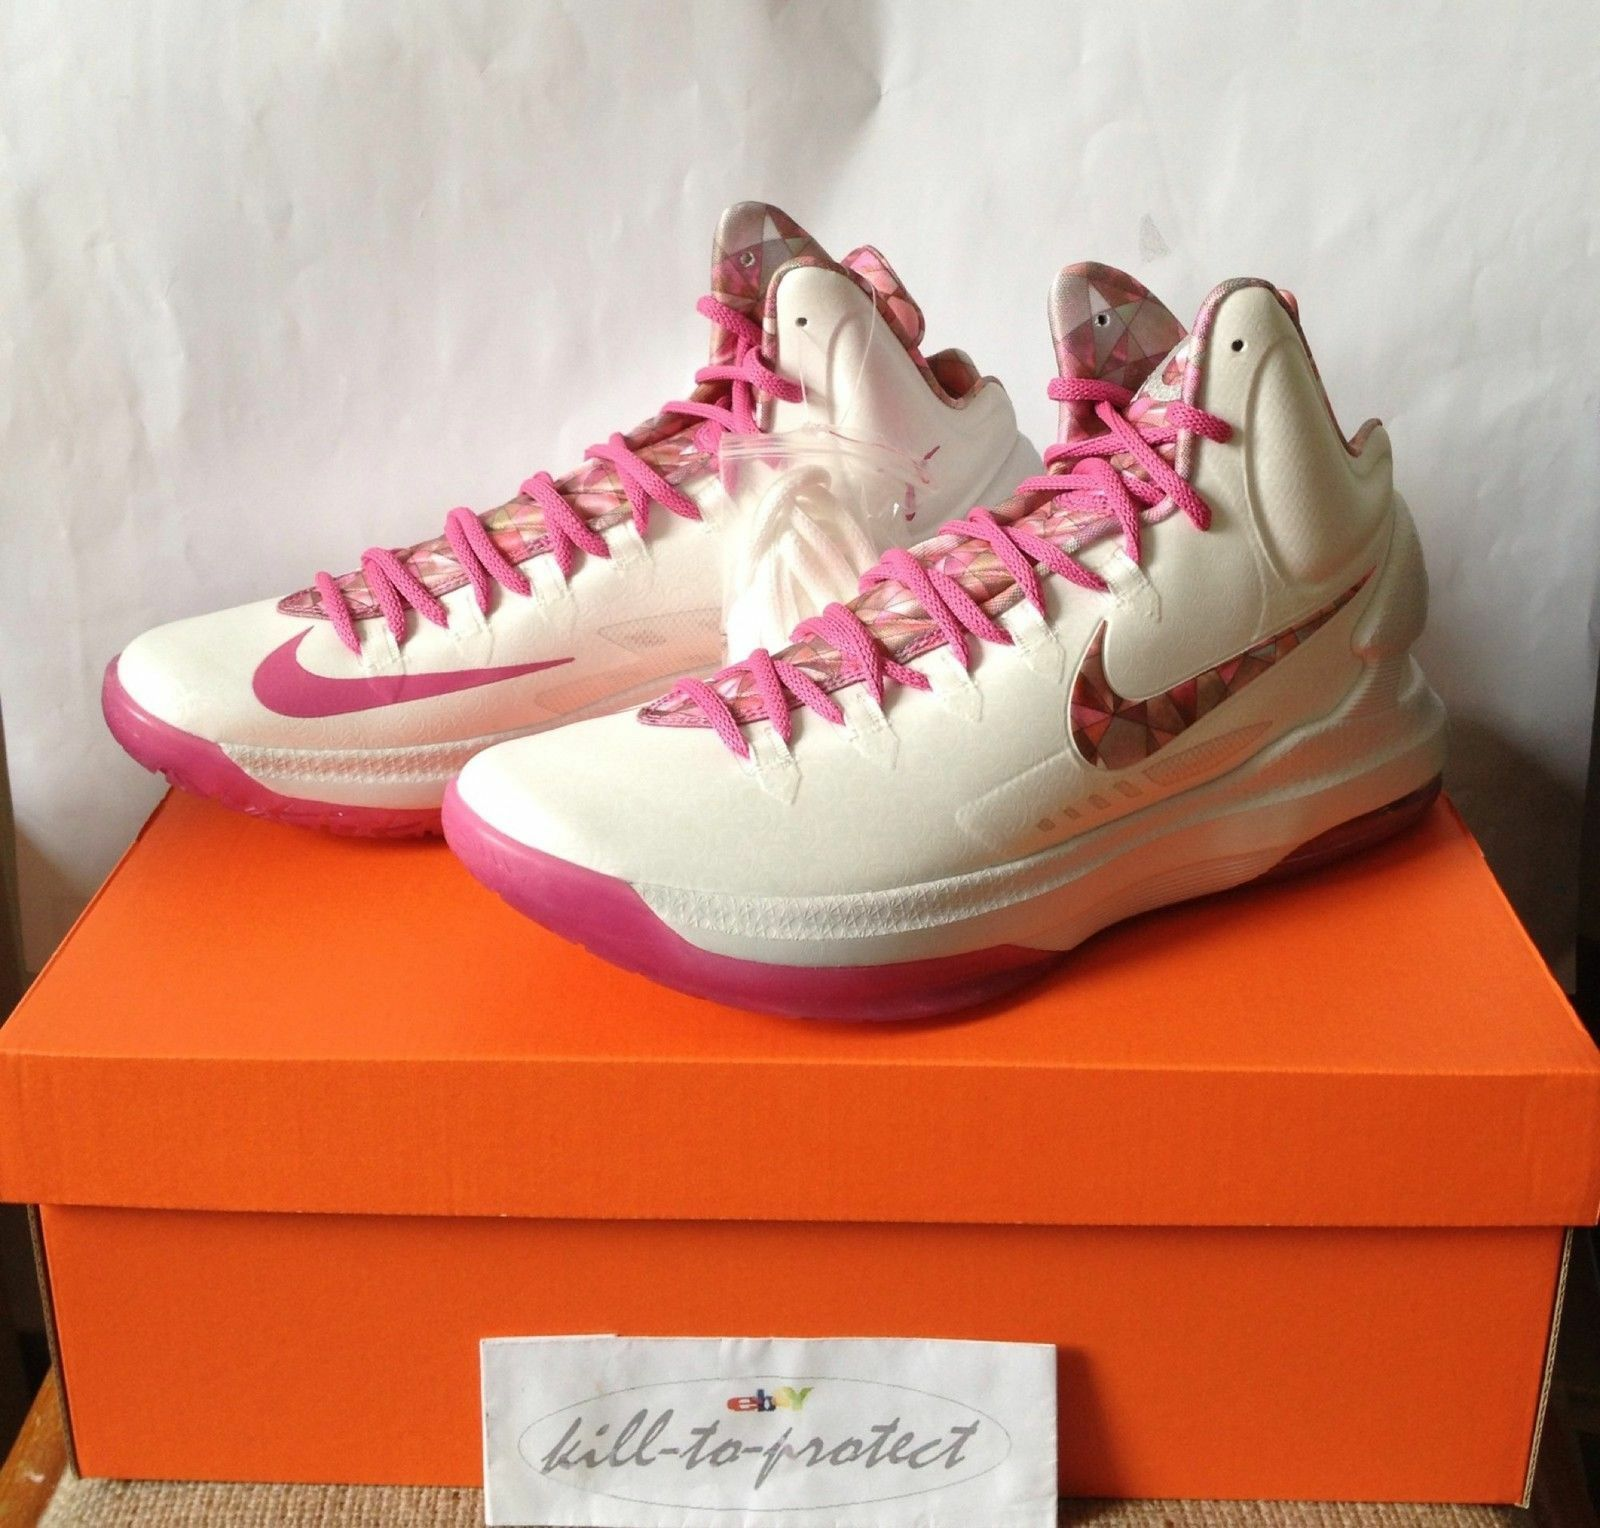 NIKE KD V 5 AUNT PEARL Rosa Breast Cancer US UK8 10 11 12 13 Galaxy 598601-100